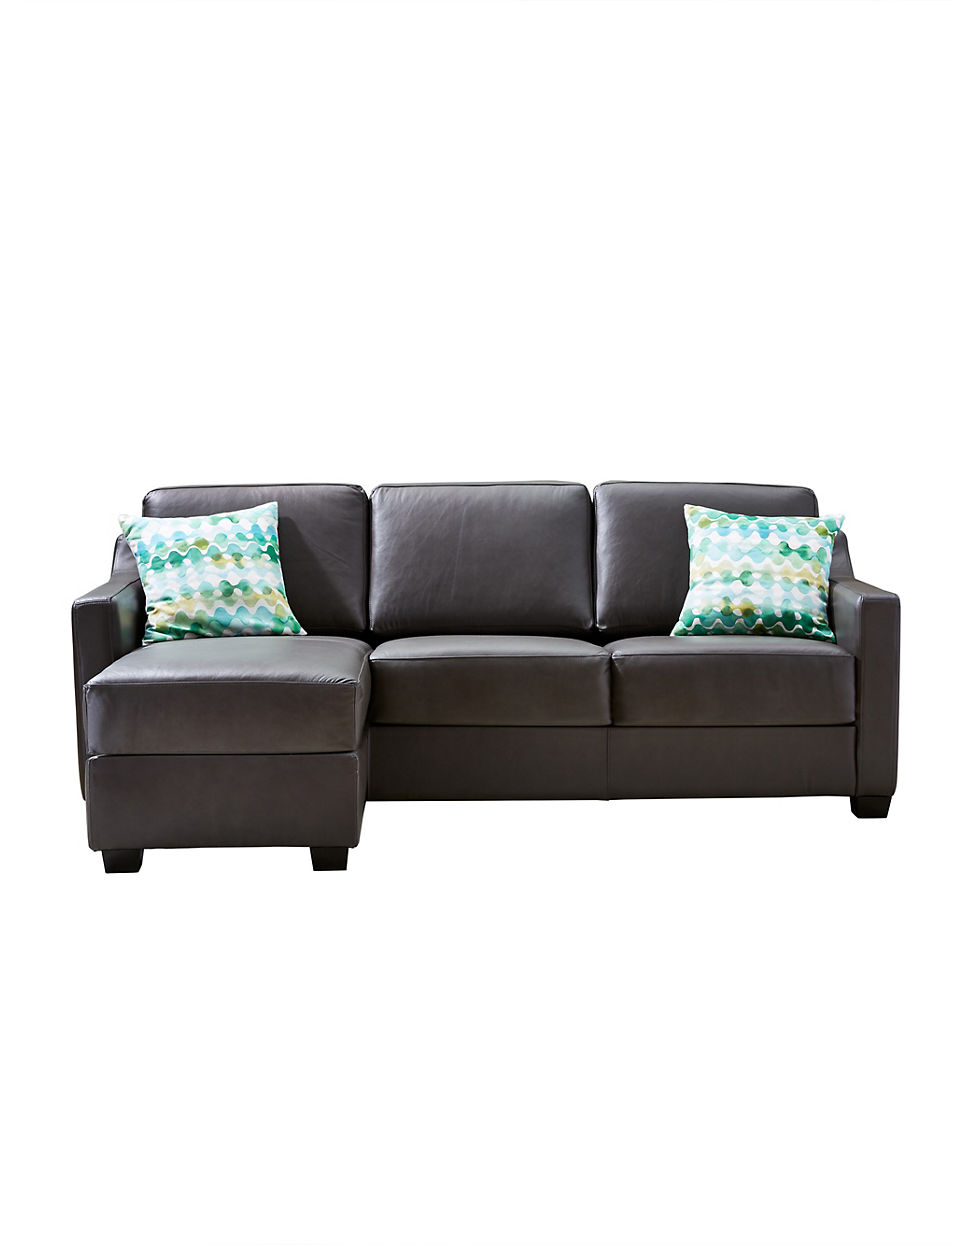 Leather sofa edmonton kijiji refil sofa for Living room furniture kijiji edmonton